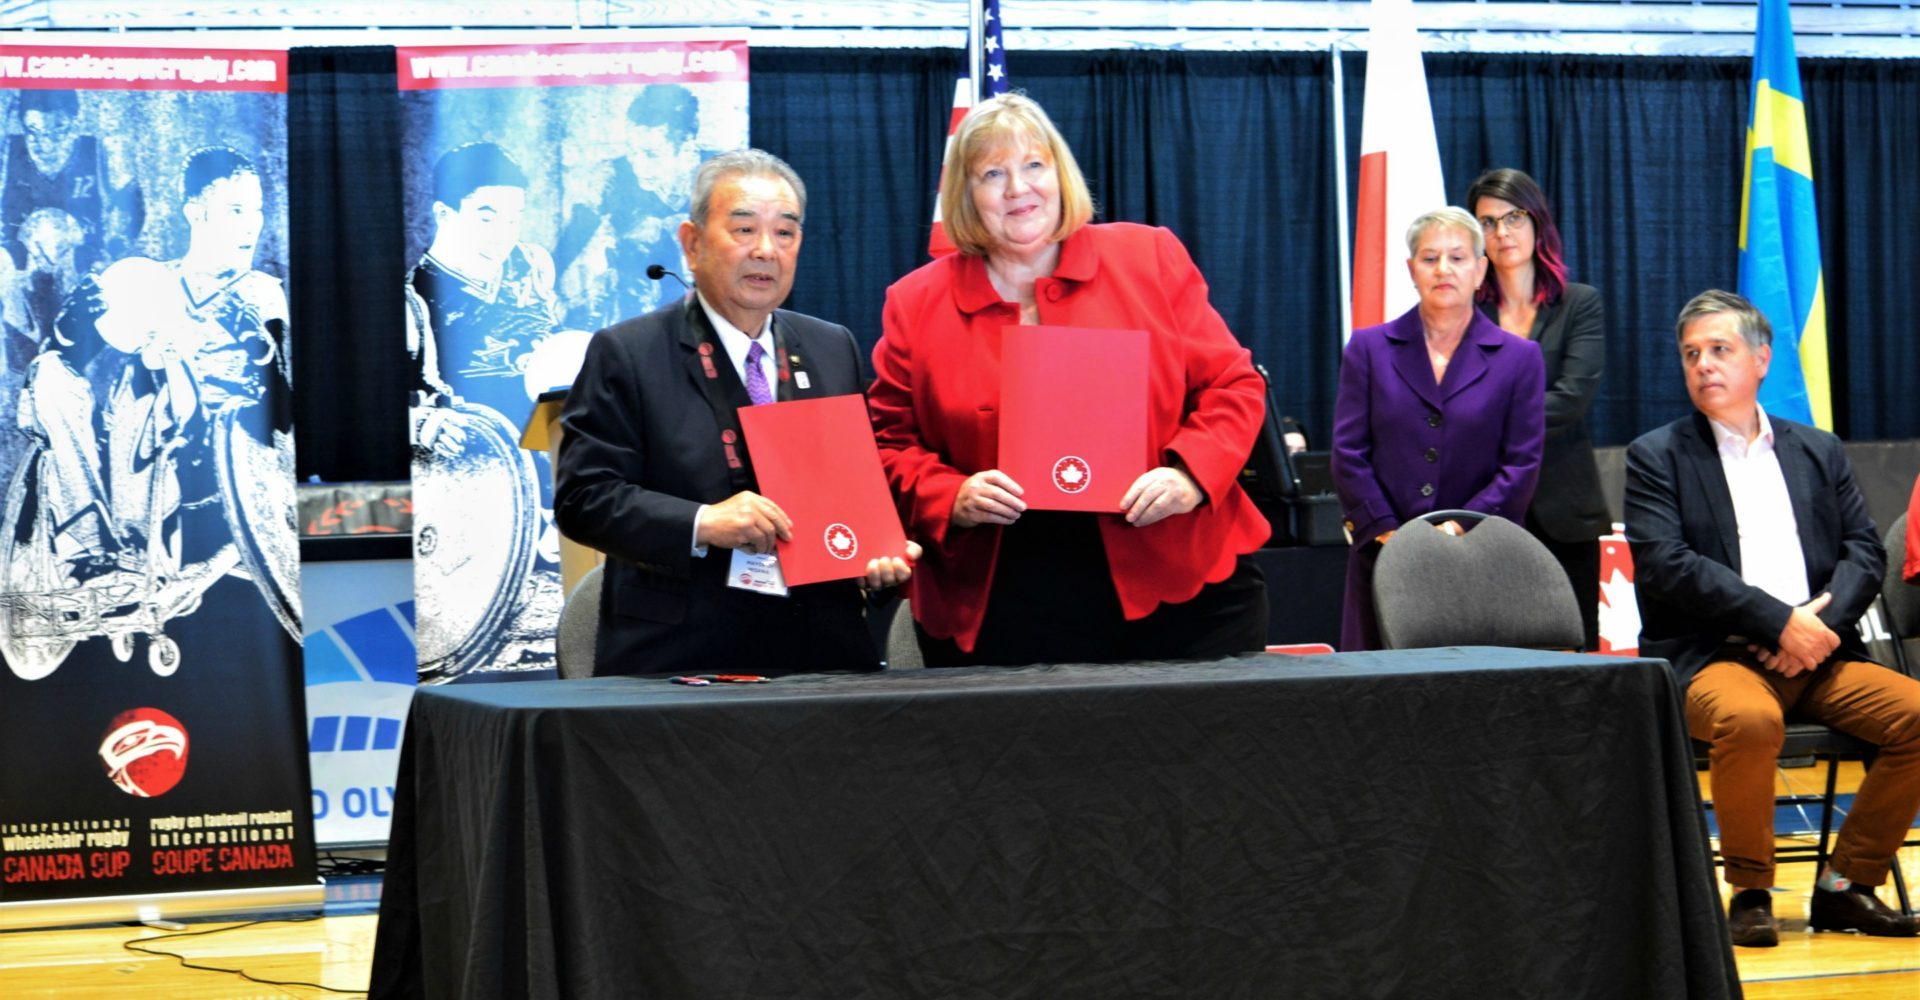 Wheelchair Rugby Canada Announces Agreement with Misawa City, Japan